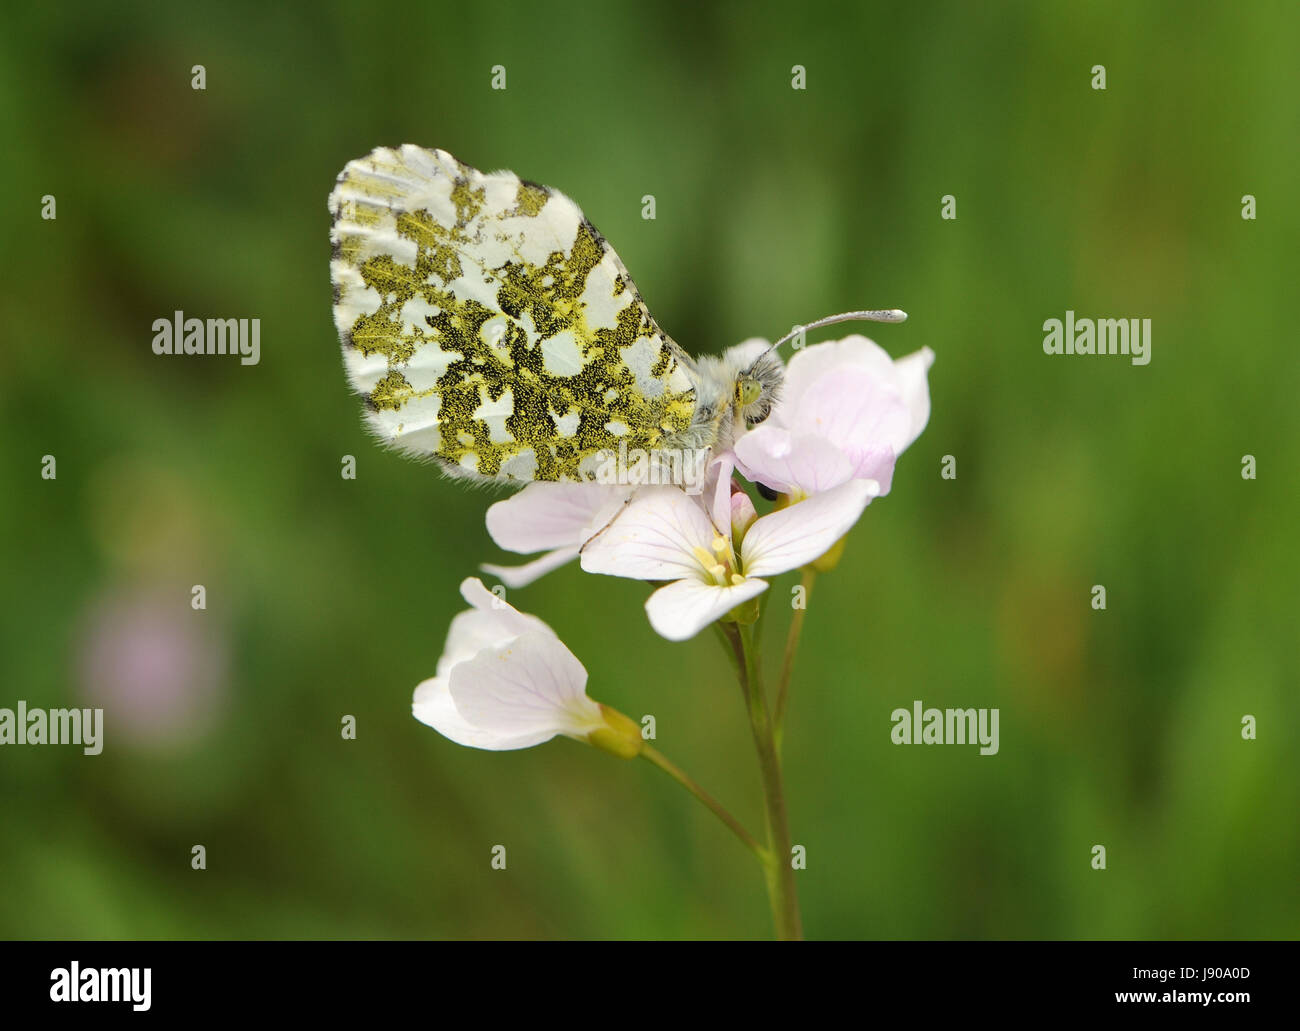 female Orange Tip butterfly (Anthocharis cardamines) on flowers of its food plant Cuckoo Flower or Ladies Smock Stock Photo